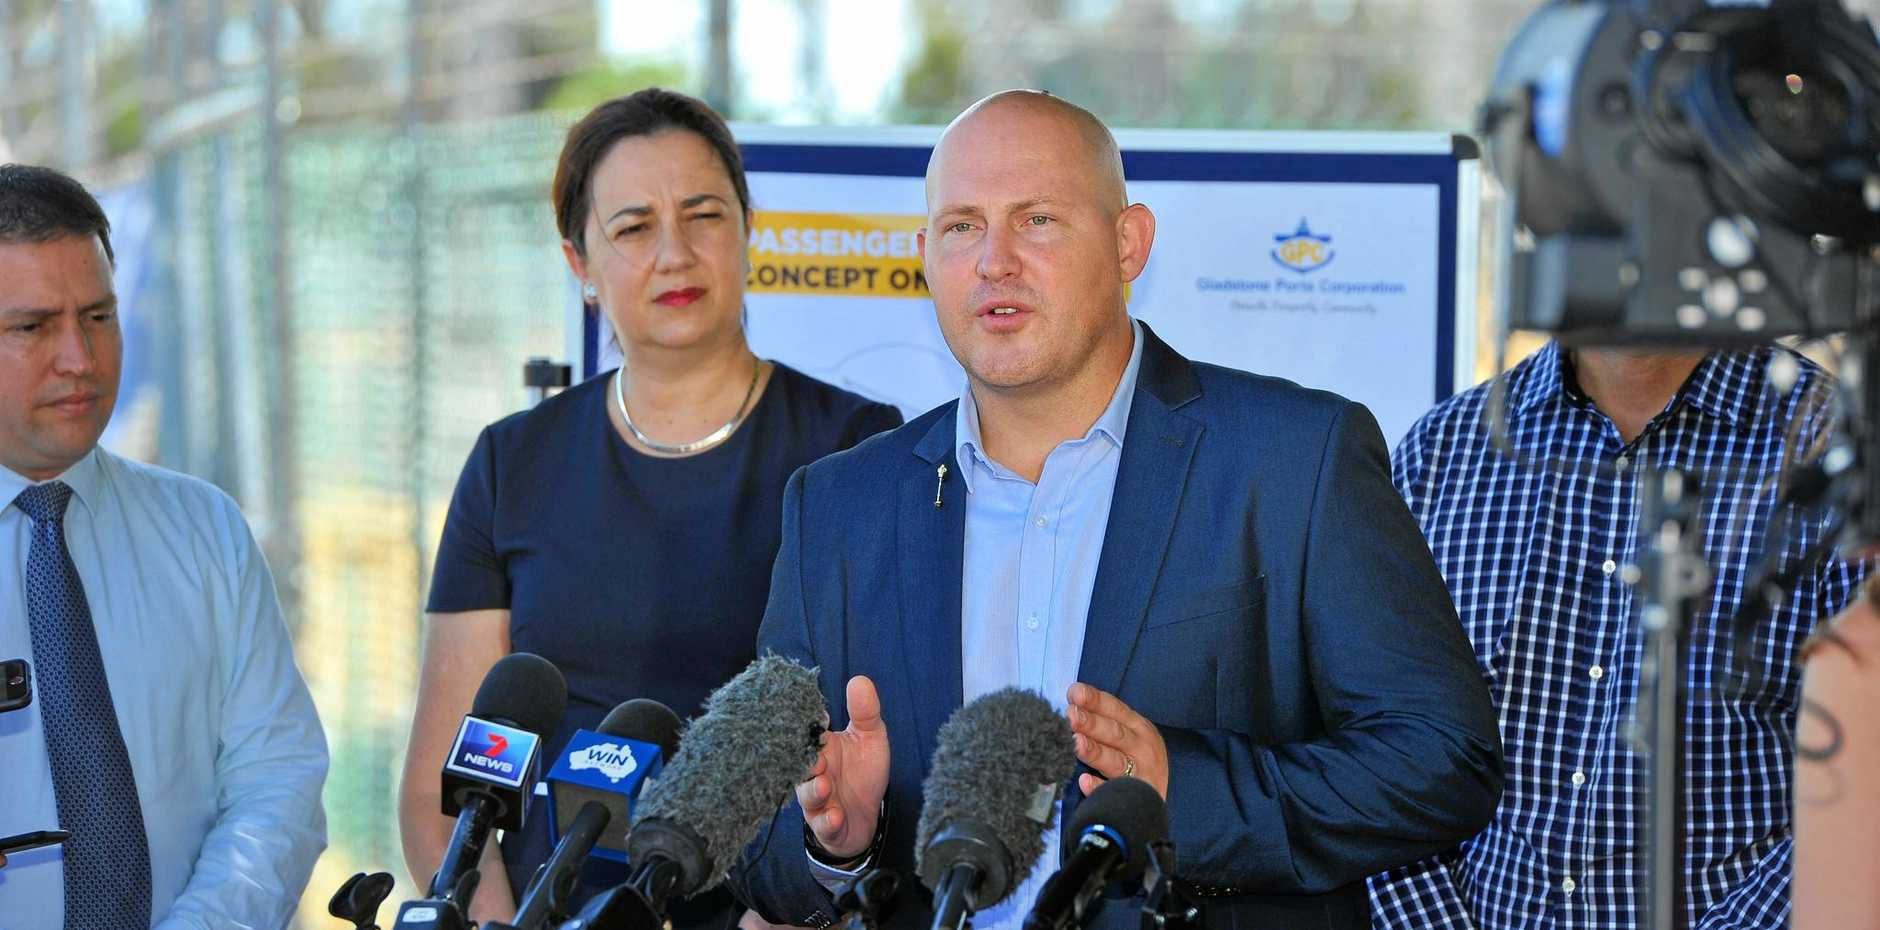 Queensland Treasurer Curtis Pitt was in Gladstone on Thursday along with Premier Annastacia Palaszczuk to announce funding for Stage 1B of the East Shores development.